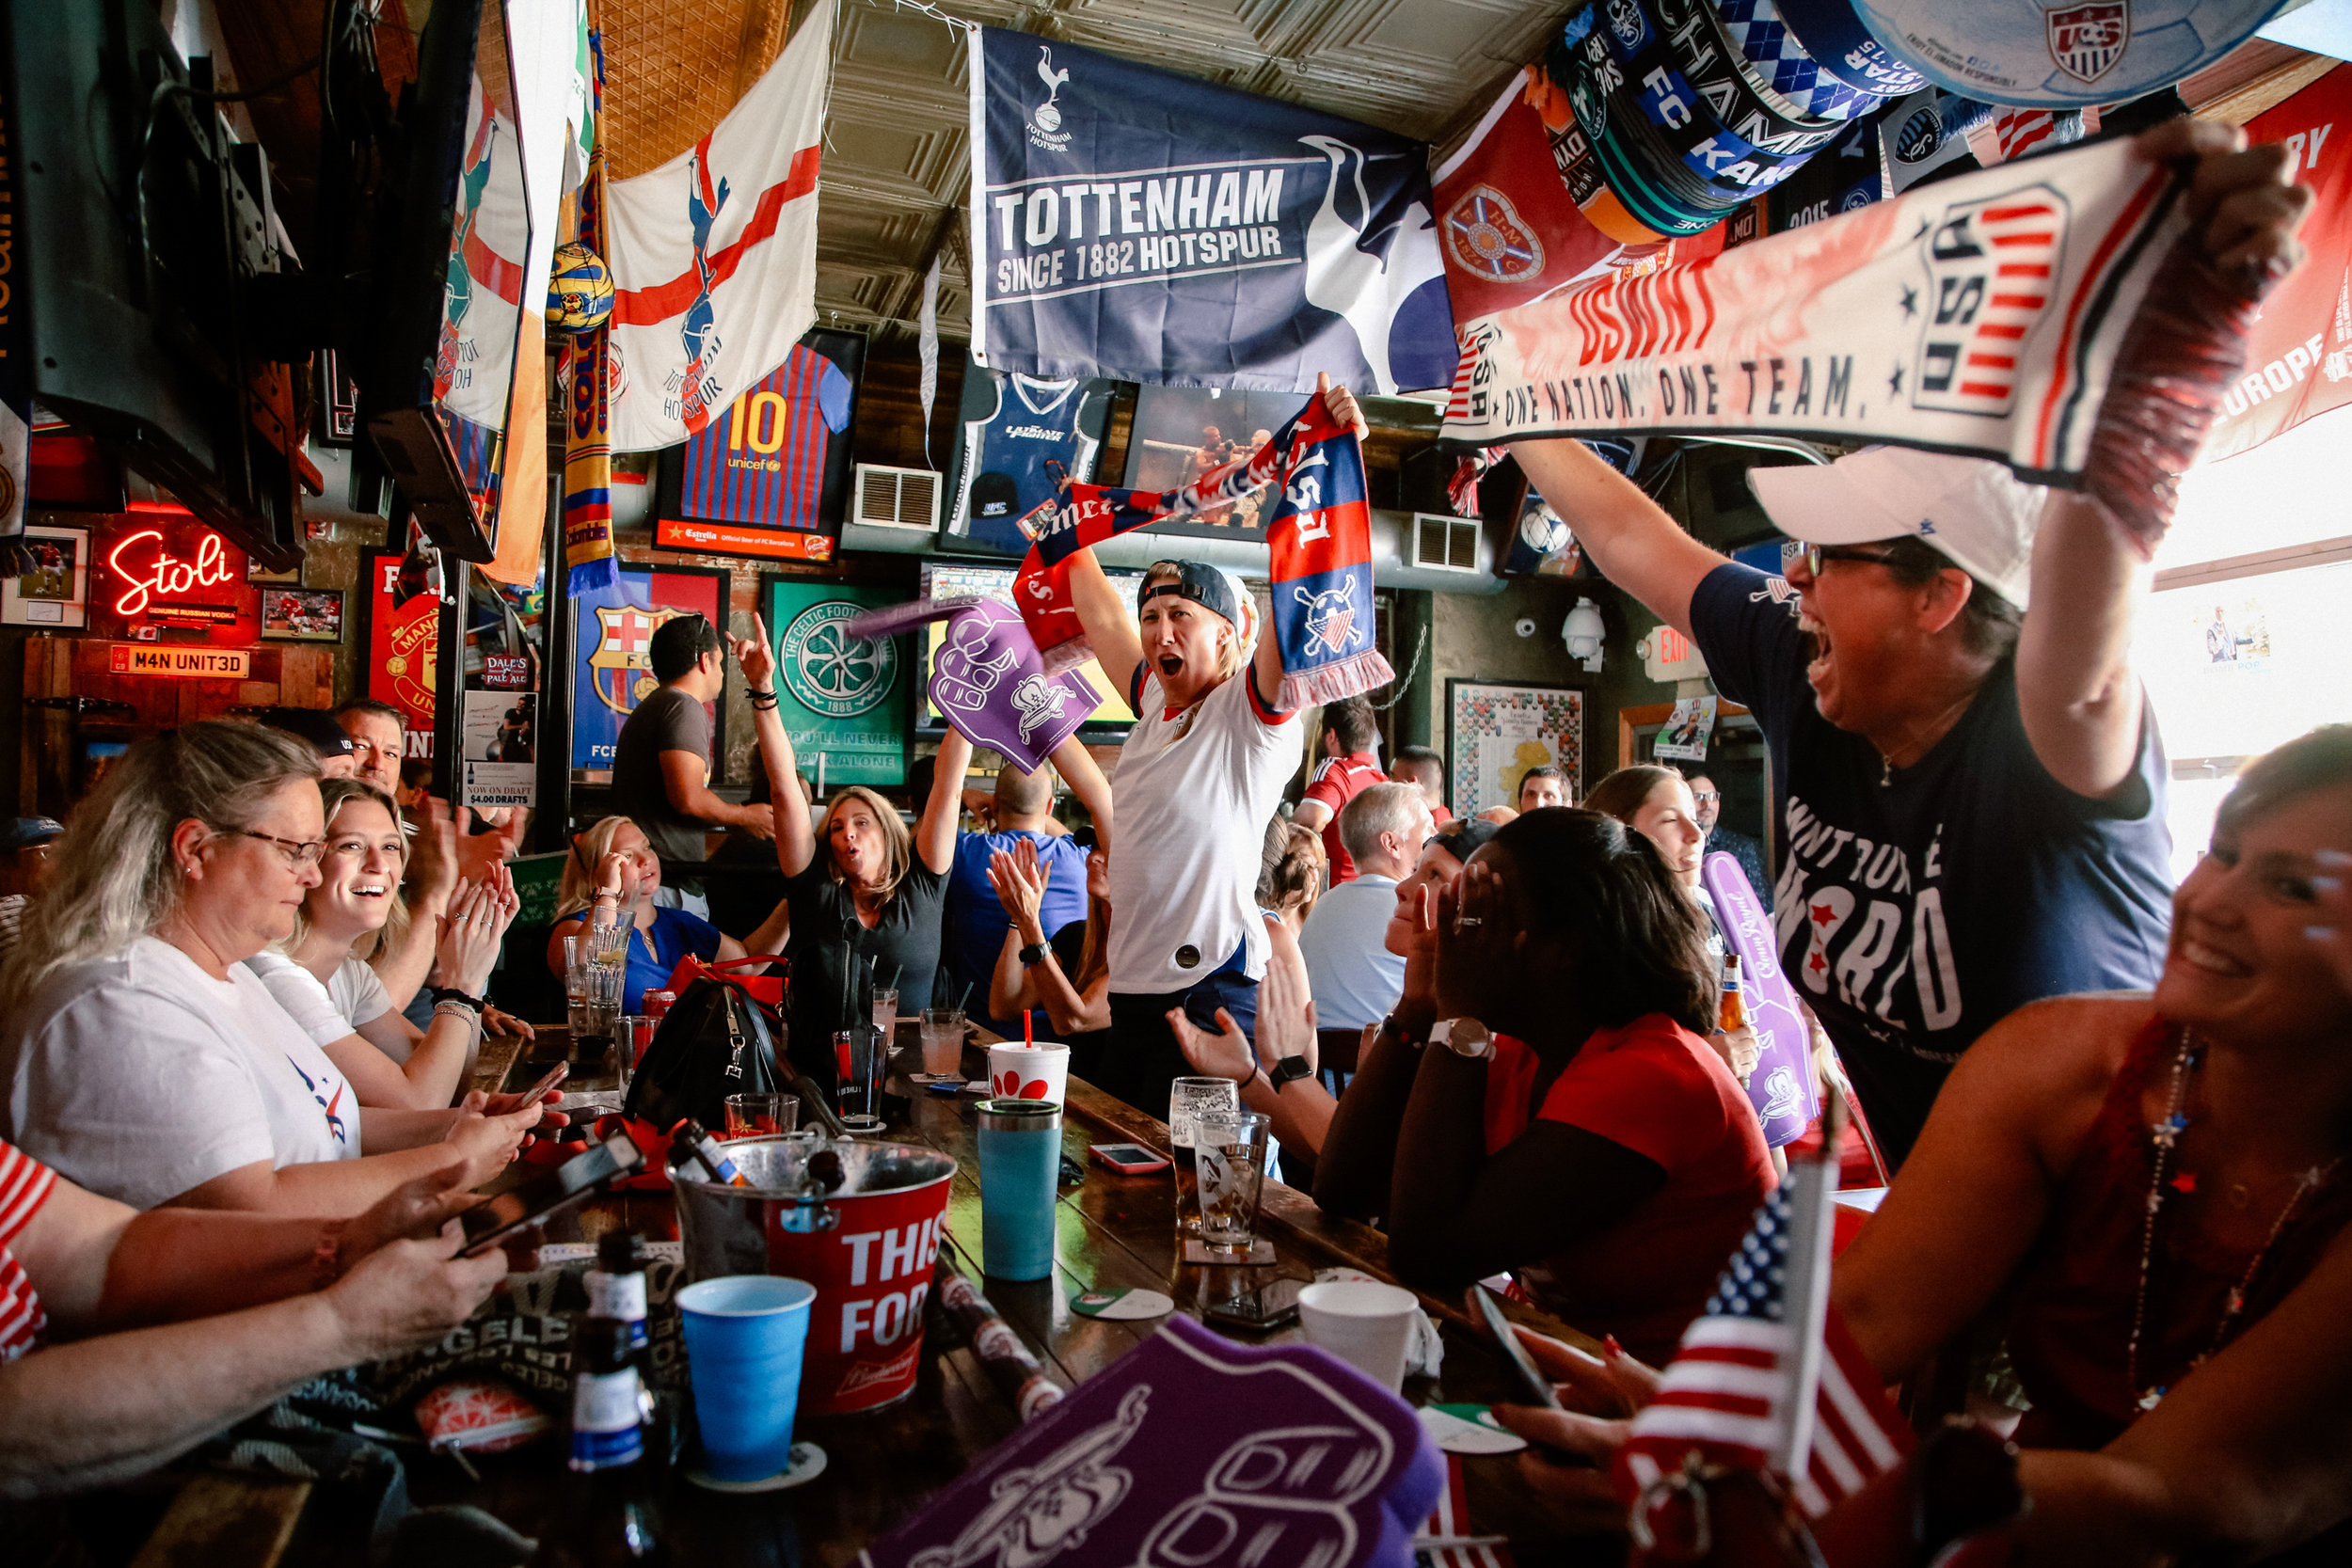 Angela Porter and Jill Boeckman raise their scarves over the cheering crowd at Empire Bar after the United States women's national soccer team beat France 2-1 in the Women's World Cup quarterfinal game on June 28, 2019.